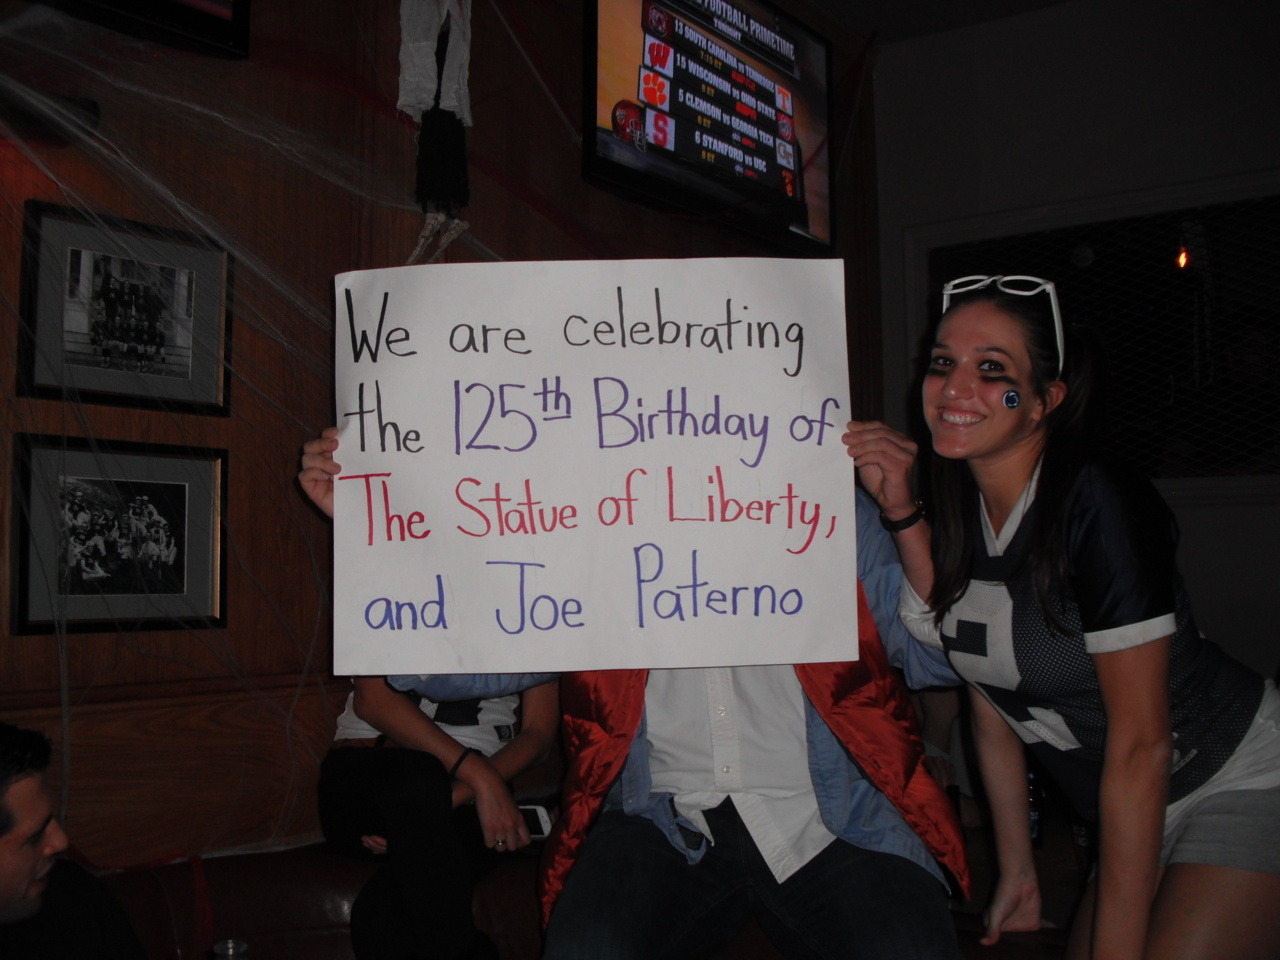 We are celebrating the 125th Birthday of The Statue of Liberty, and Joe Paterno